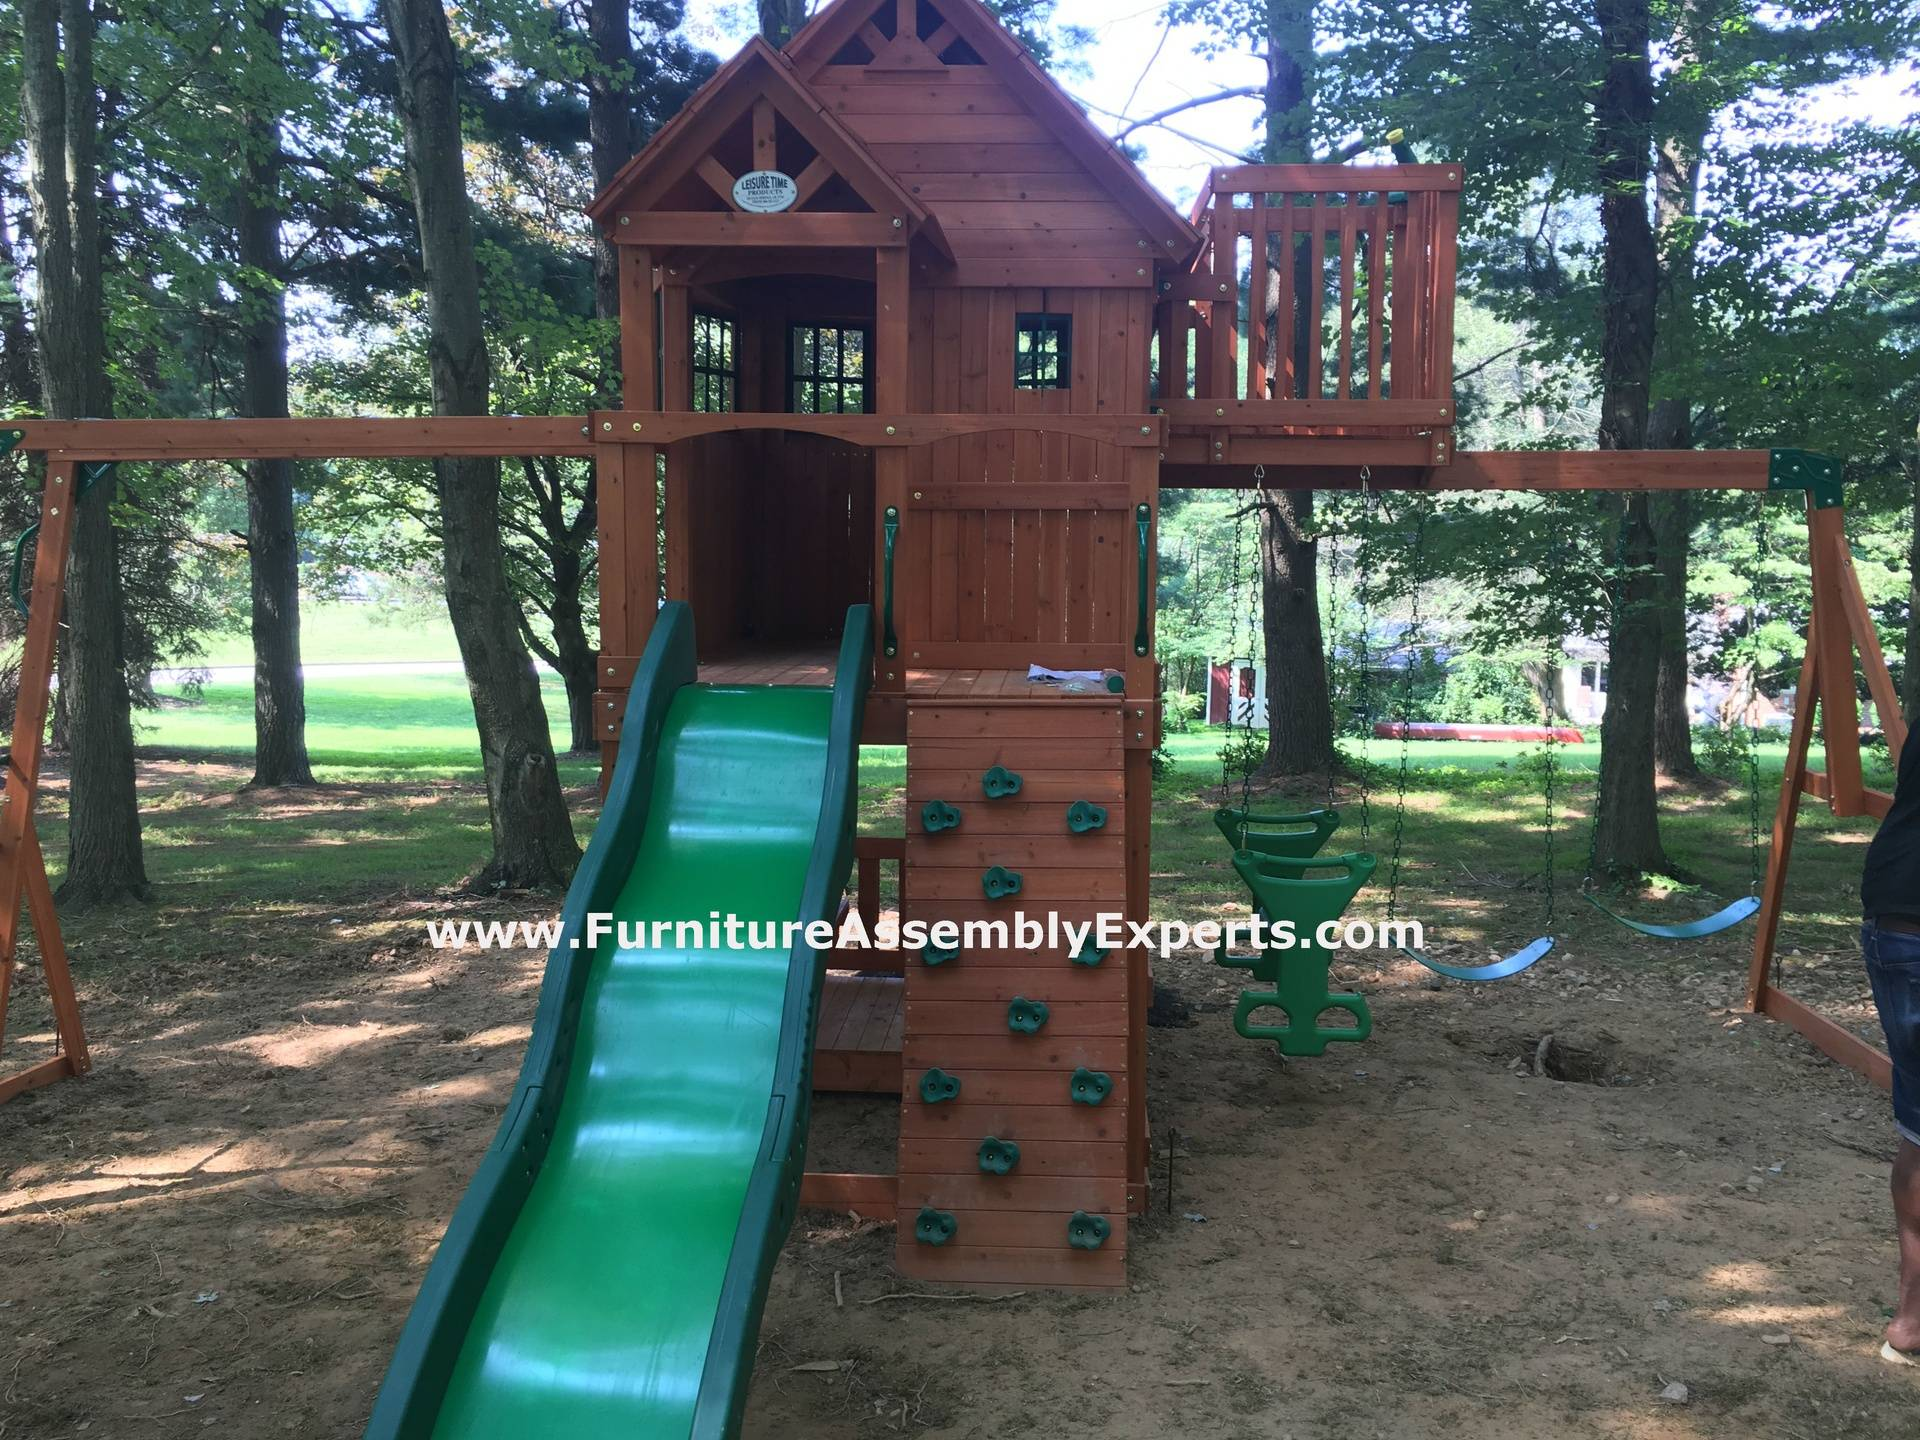 skyfort swing set installation in DC MD VA